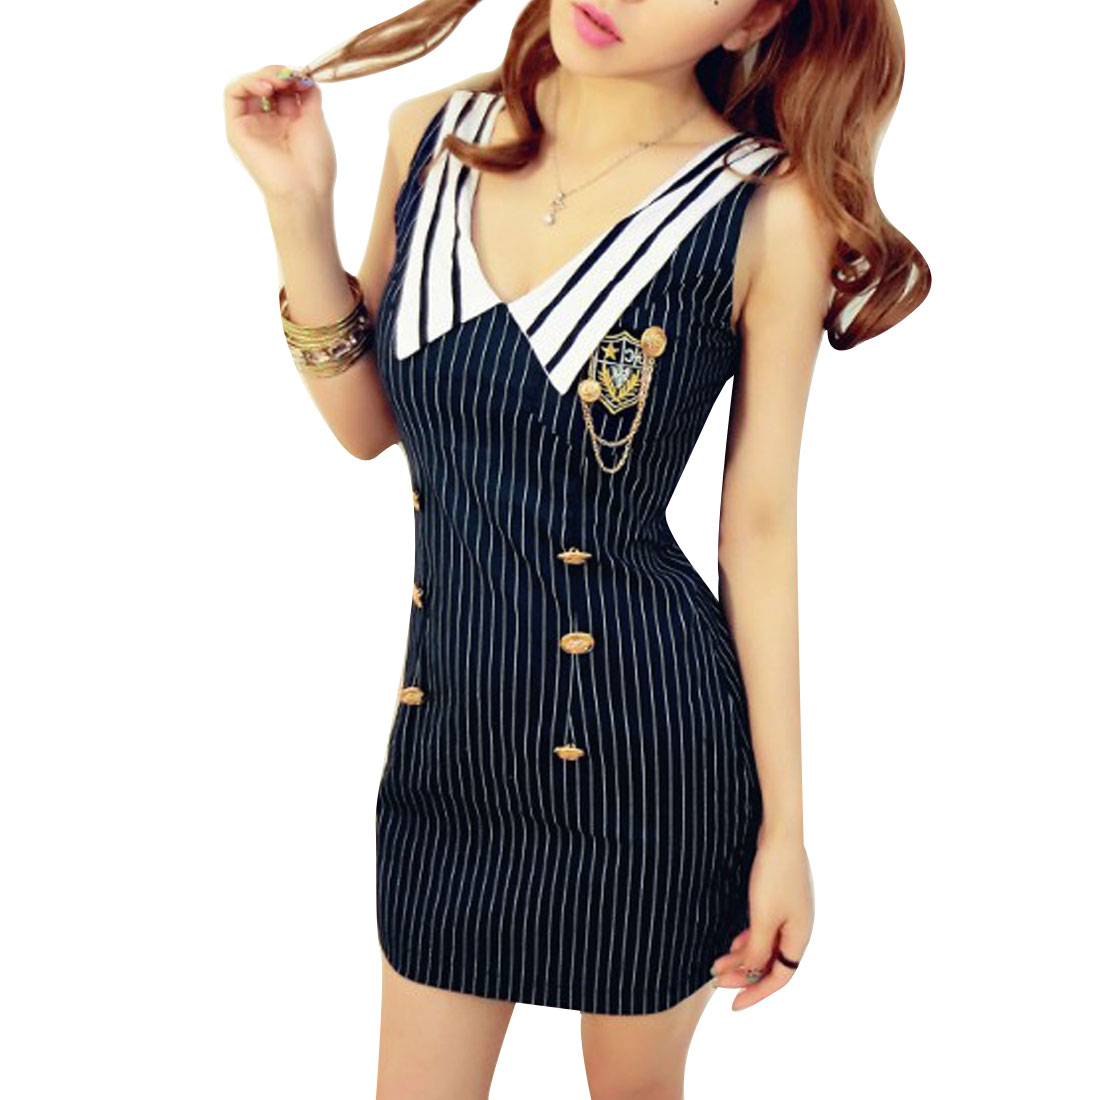 Lady Sleeveless Open Back Stripes Pattern Decor Buttoned Navy Blue Mini Dress XS